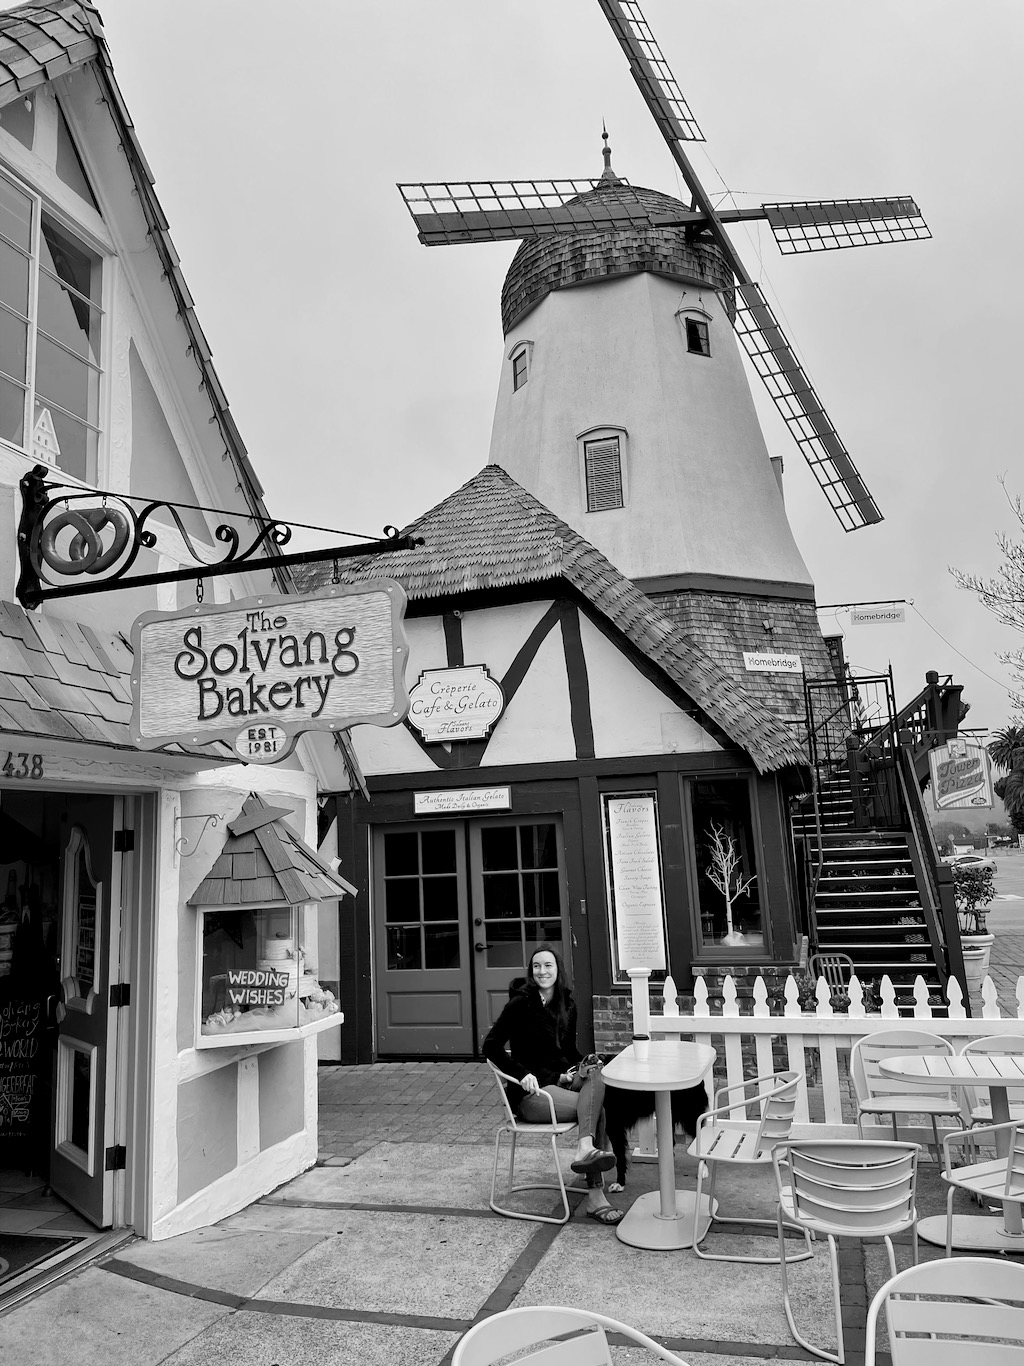 Our quick stay in Solvang, a Danish-inspired city.